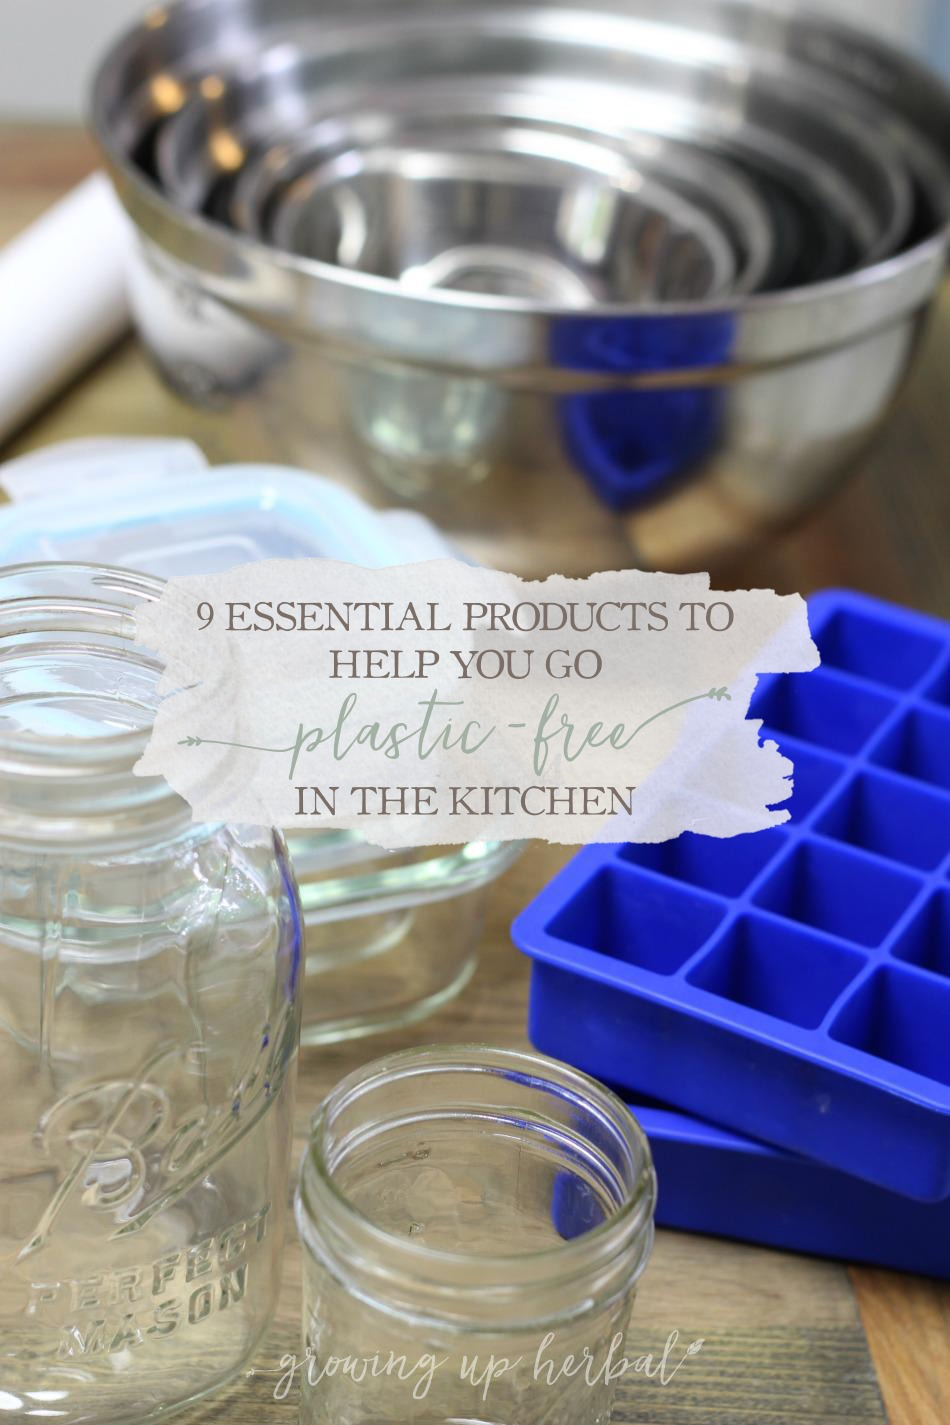 9 Essential Products To Help You Go Plastic-Free In The Kitchen | Growing Up Herbal | Here are 9 products to make going plastic-free in the kitchen a bit easier on you!